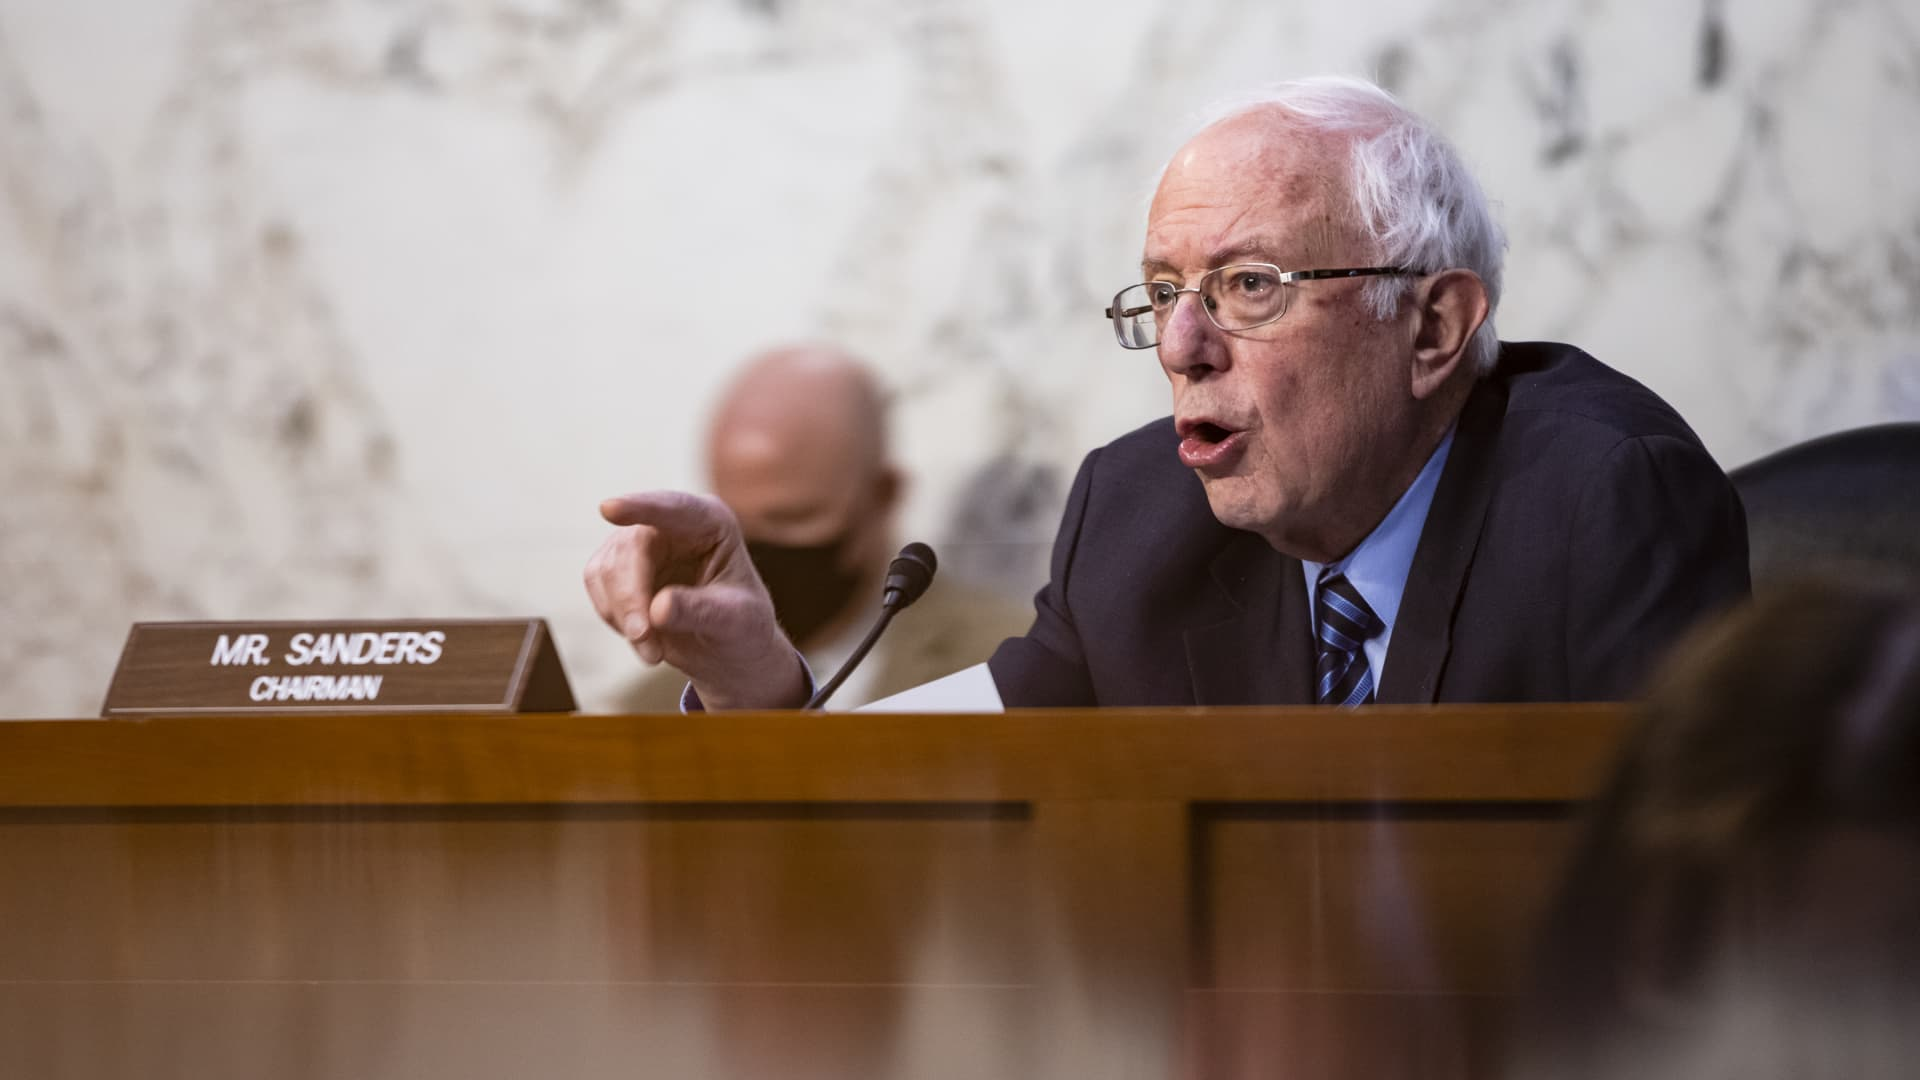 Senator Bernie Sanders, an independent from Vermont and chairman of the Senate Budget Committee, speaks during a hearing in Washington, D.C., U.S., on Wednesday, March 17, 2021.